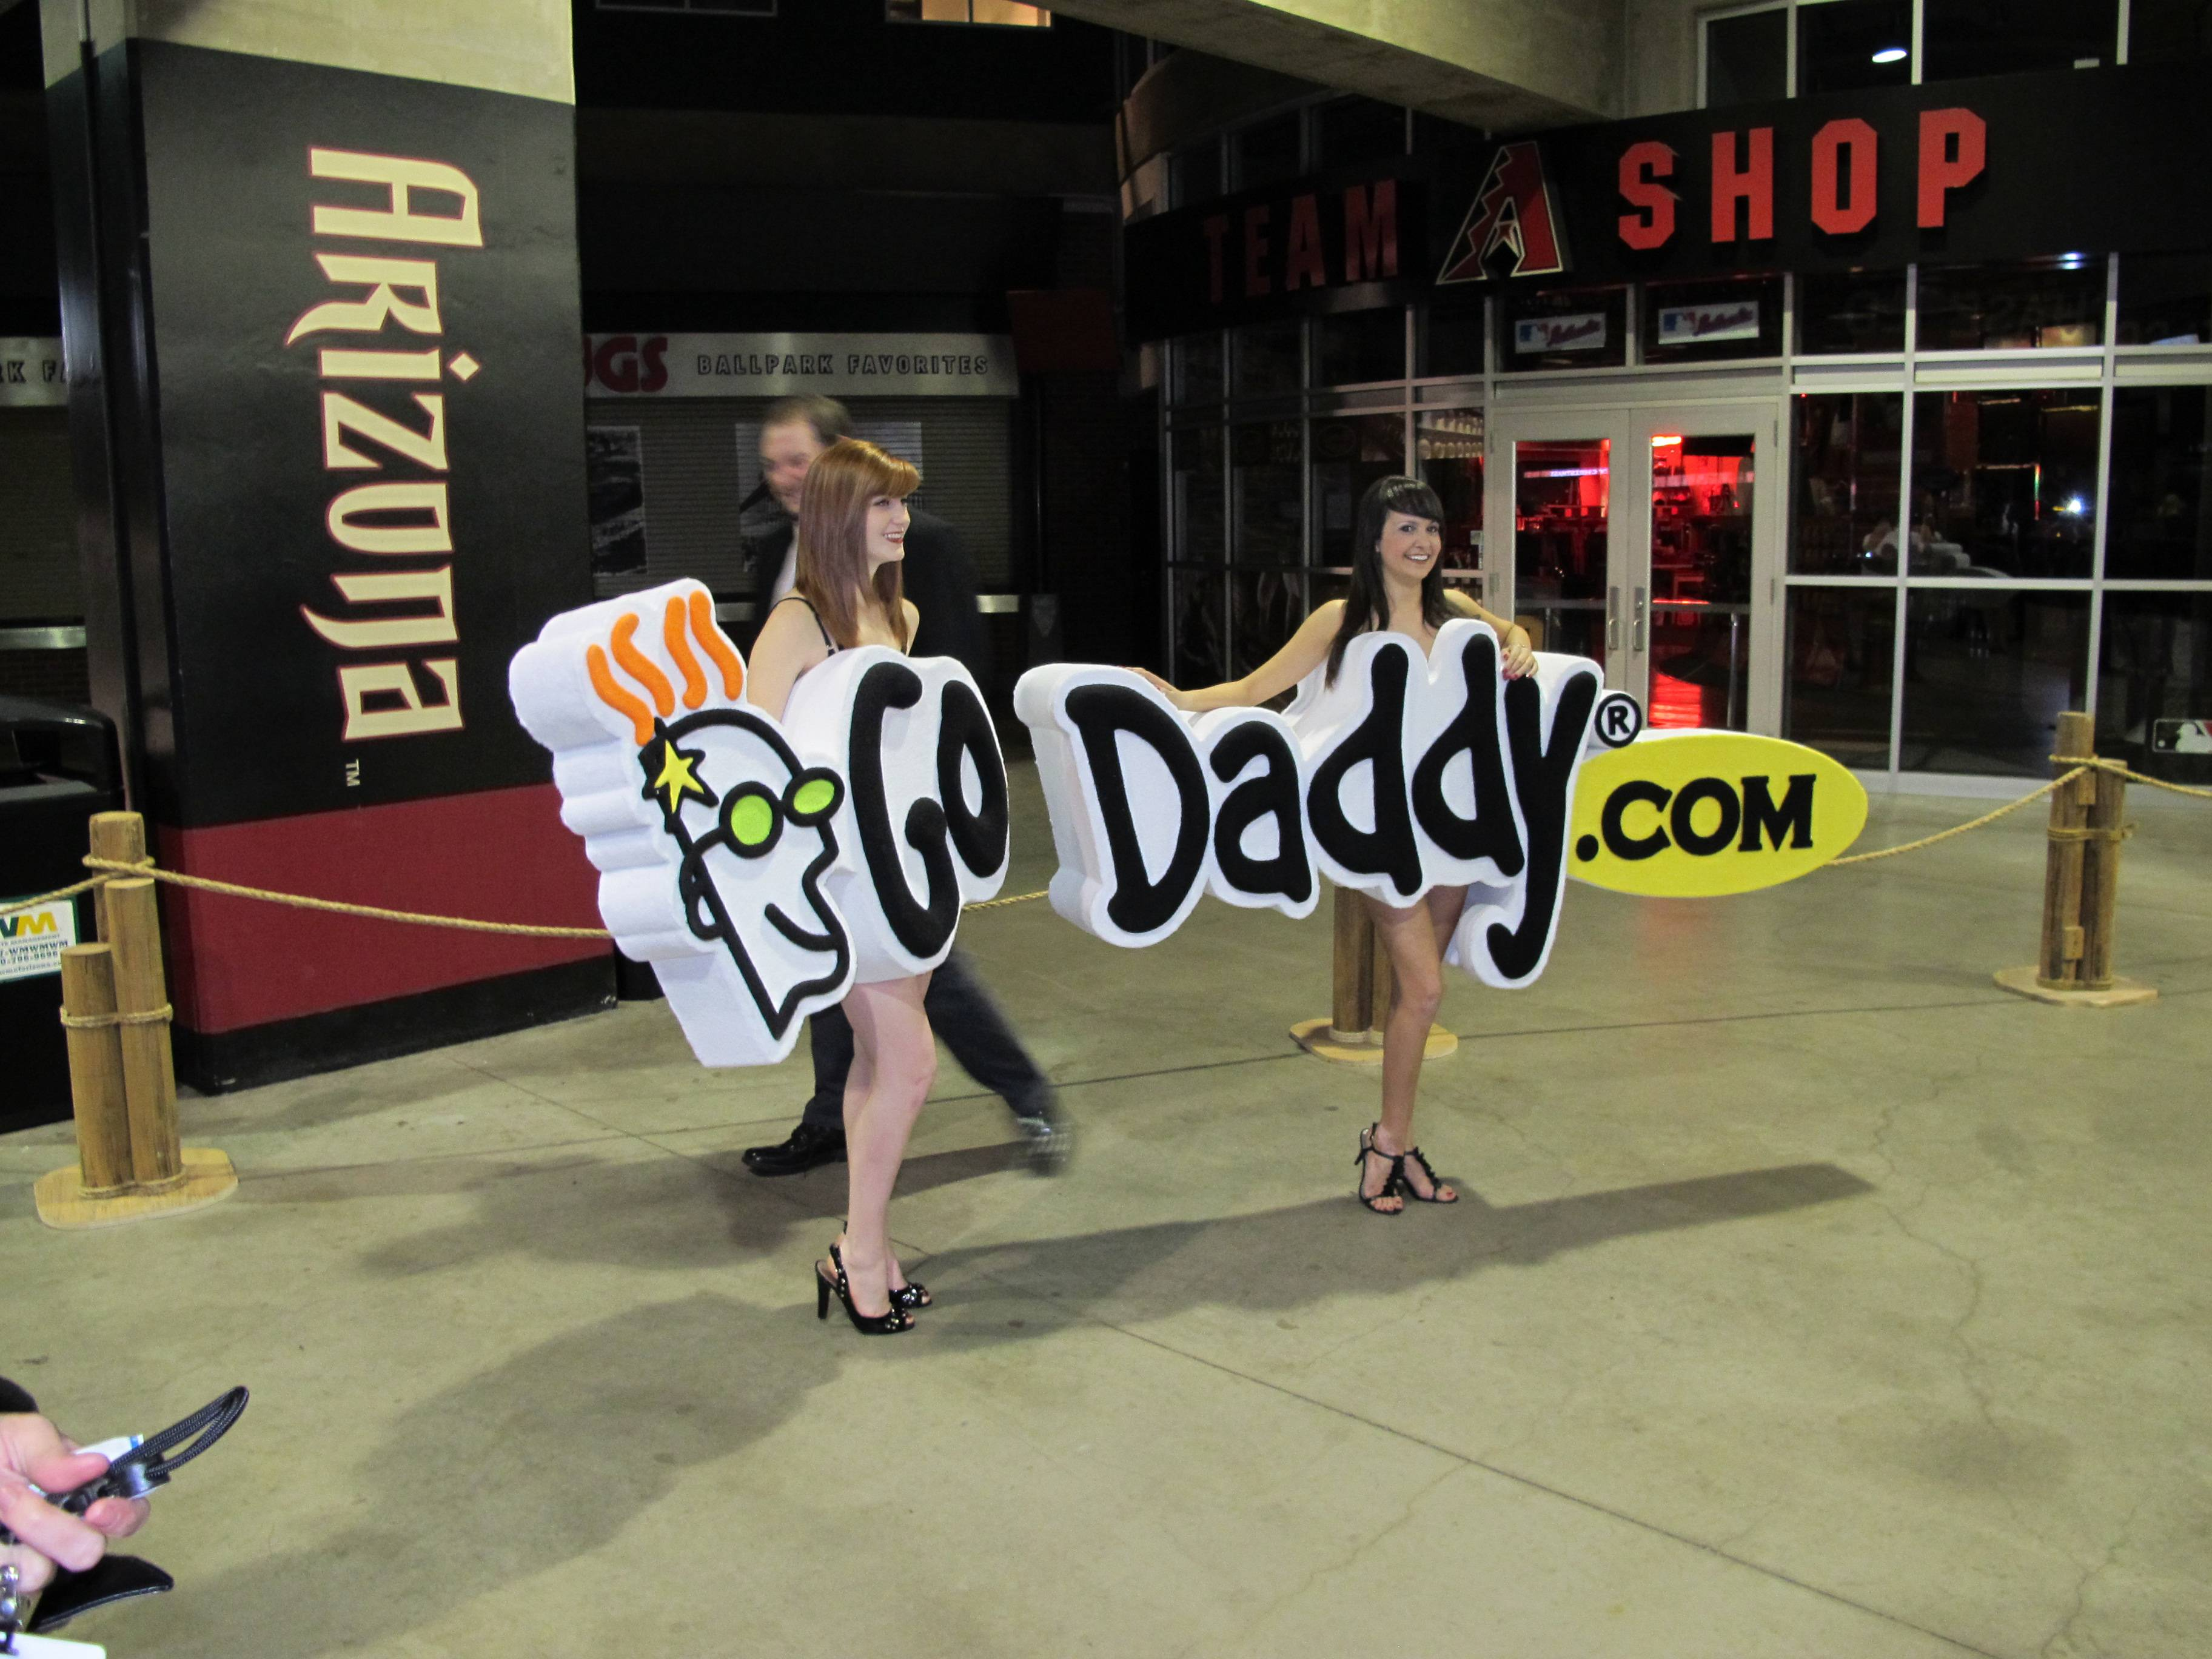 Girls_in_Go_Daddy_Costumes